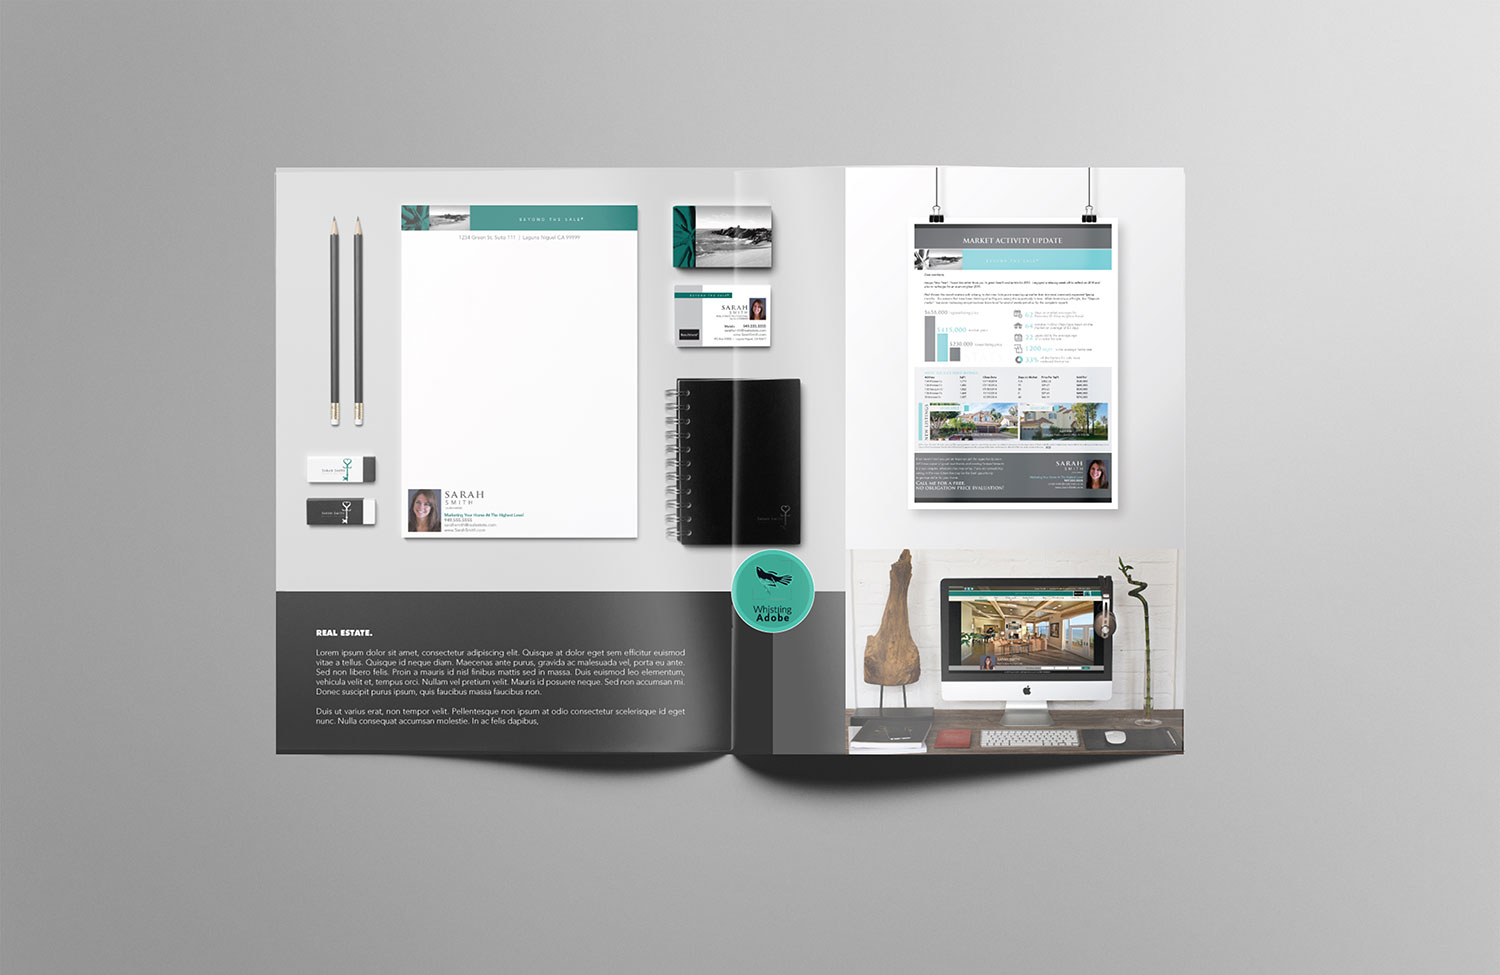 WADH-brochure-internal-mock-up1.jpg